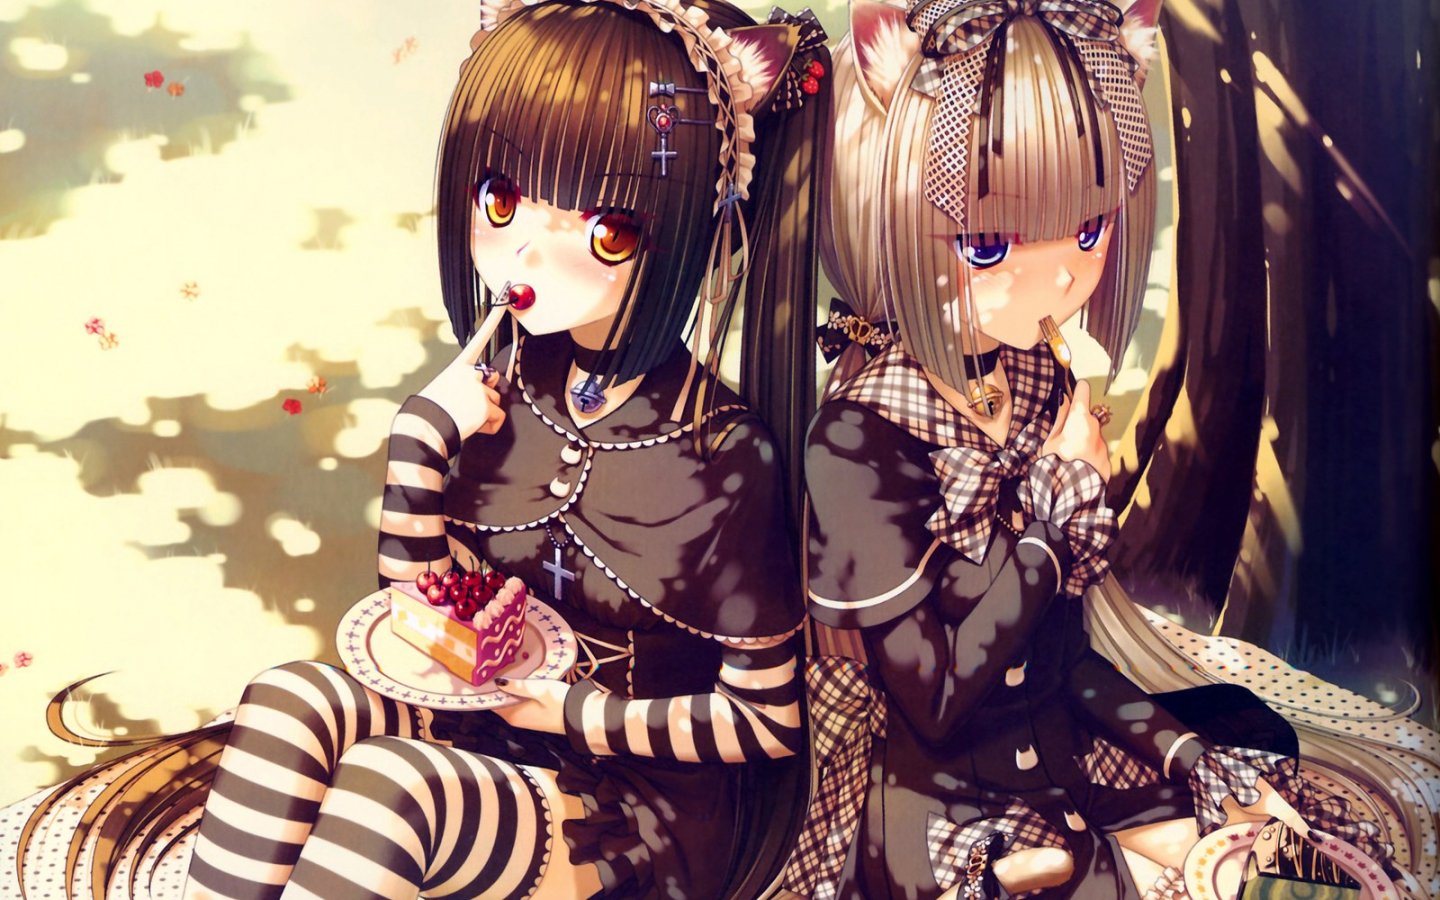 Free Download Anime Wallpapers Cute Anime Girl Wallpaper 1600x1200 For Your Desktop Mobile Tablet Explore 47 Adorable Wallpapers For Girls Pic Of Cute Wallpaper Cute Wallpaper For Girls Cute